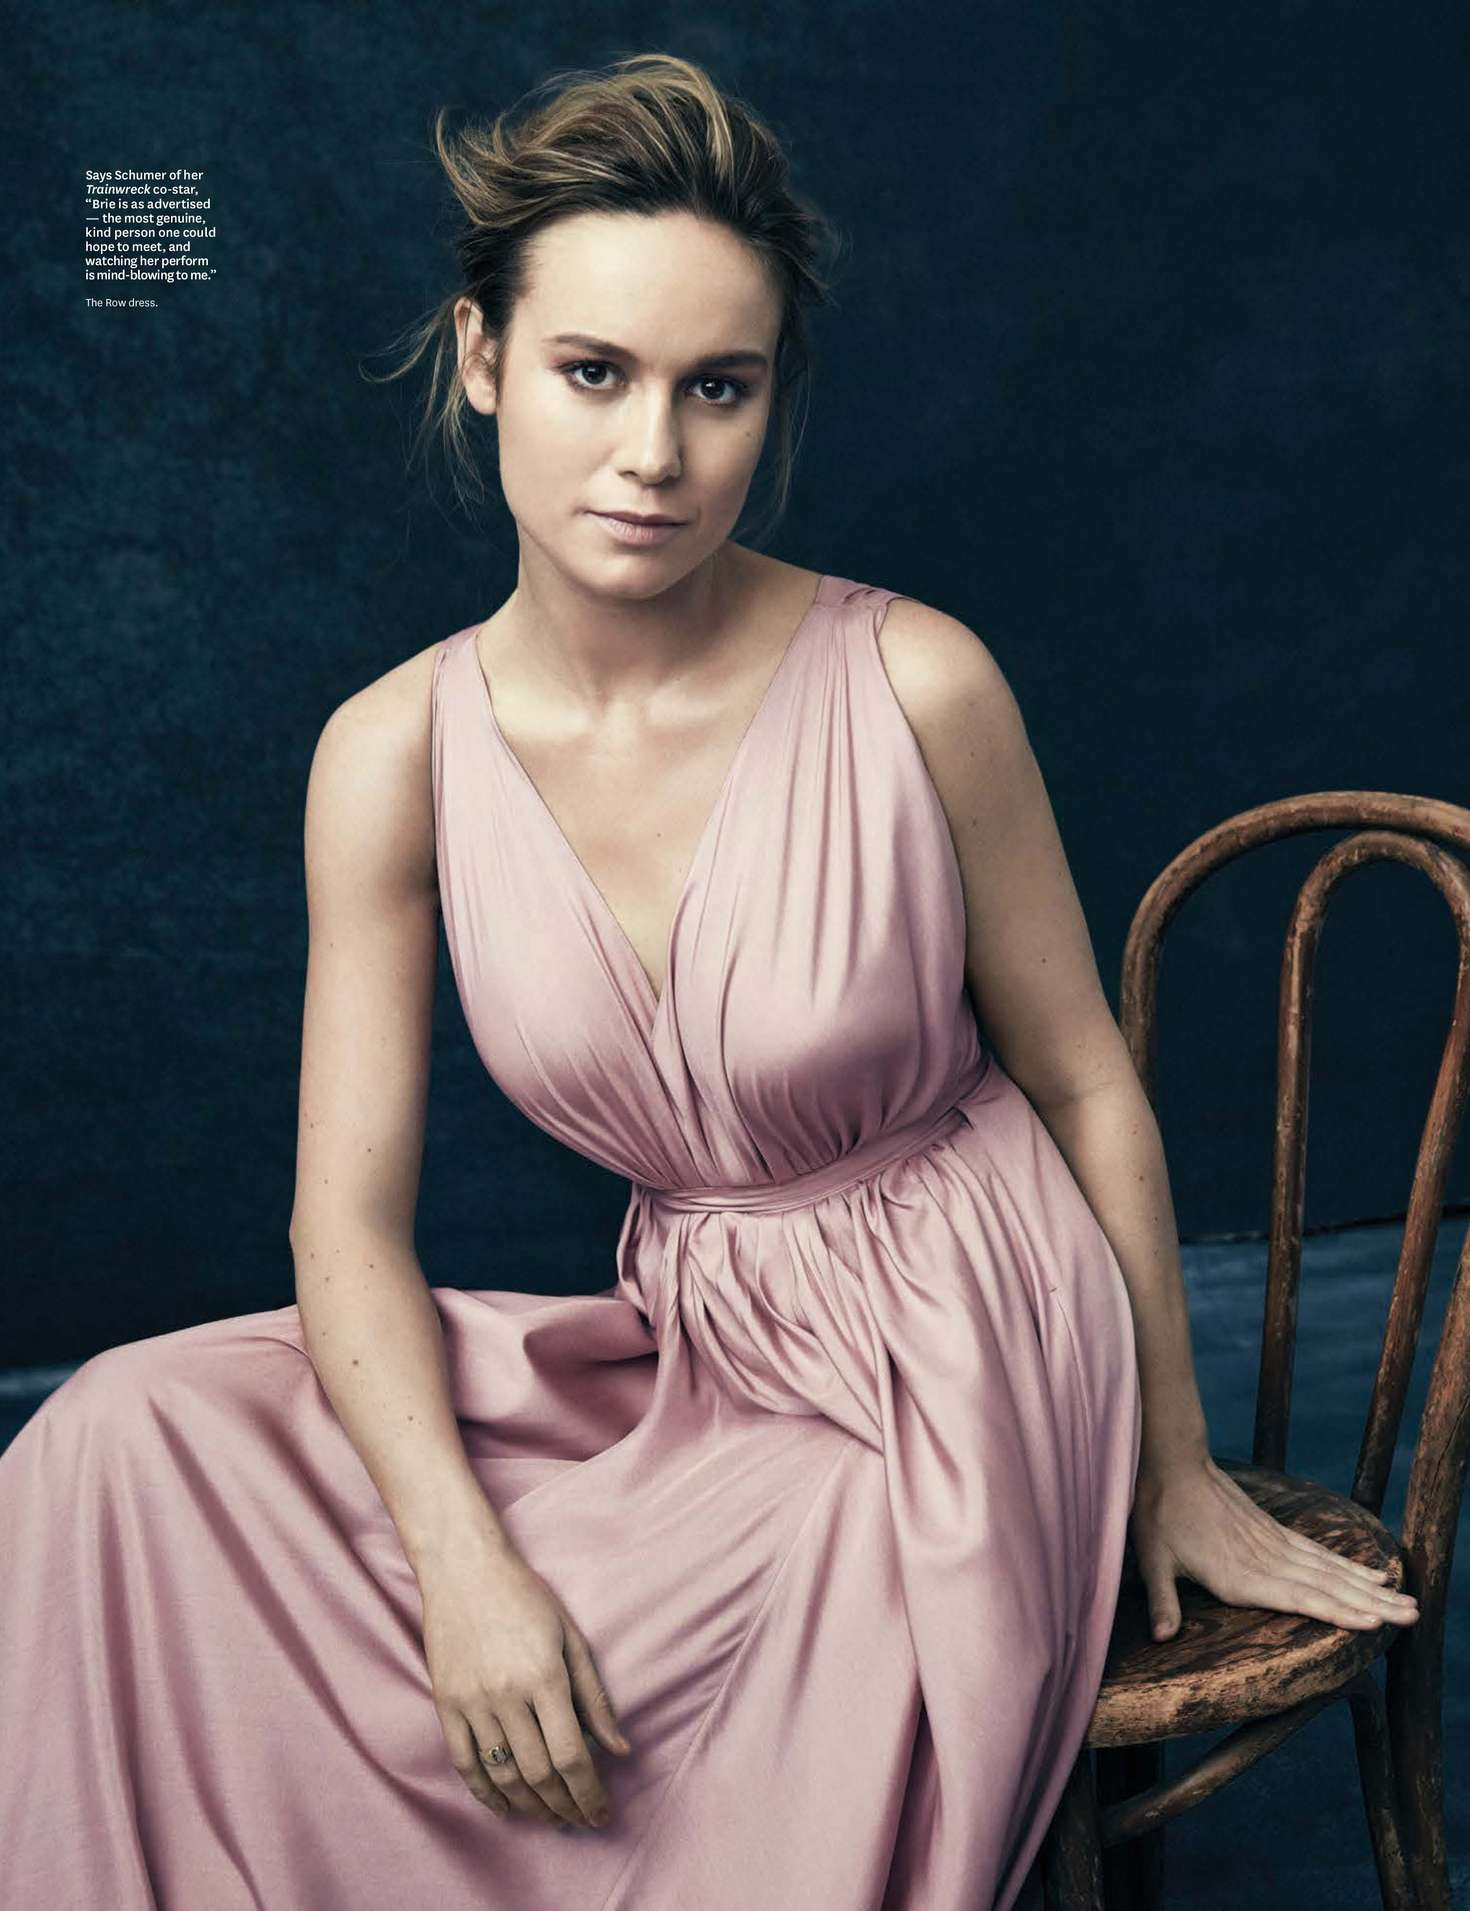 Brie Larson - The Hollywood Reporter Magazine (January 2016)